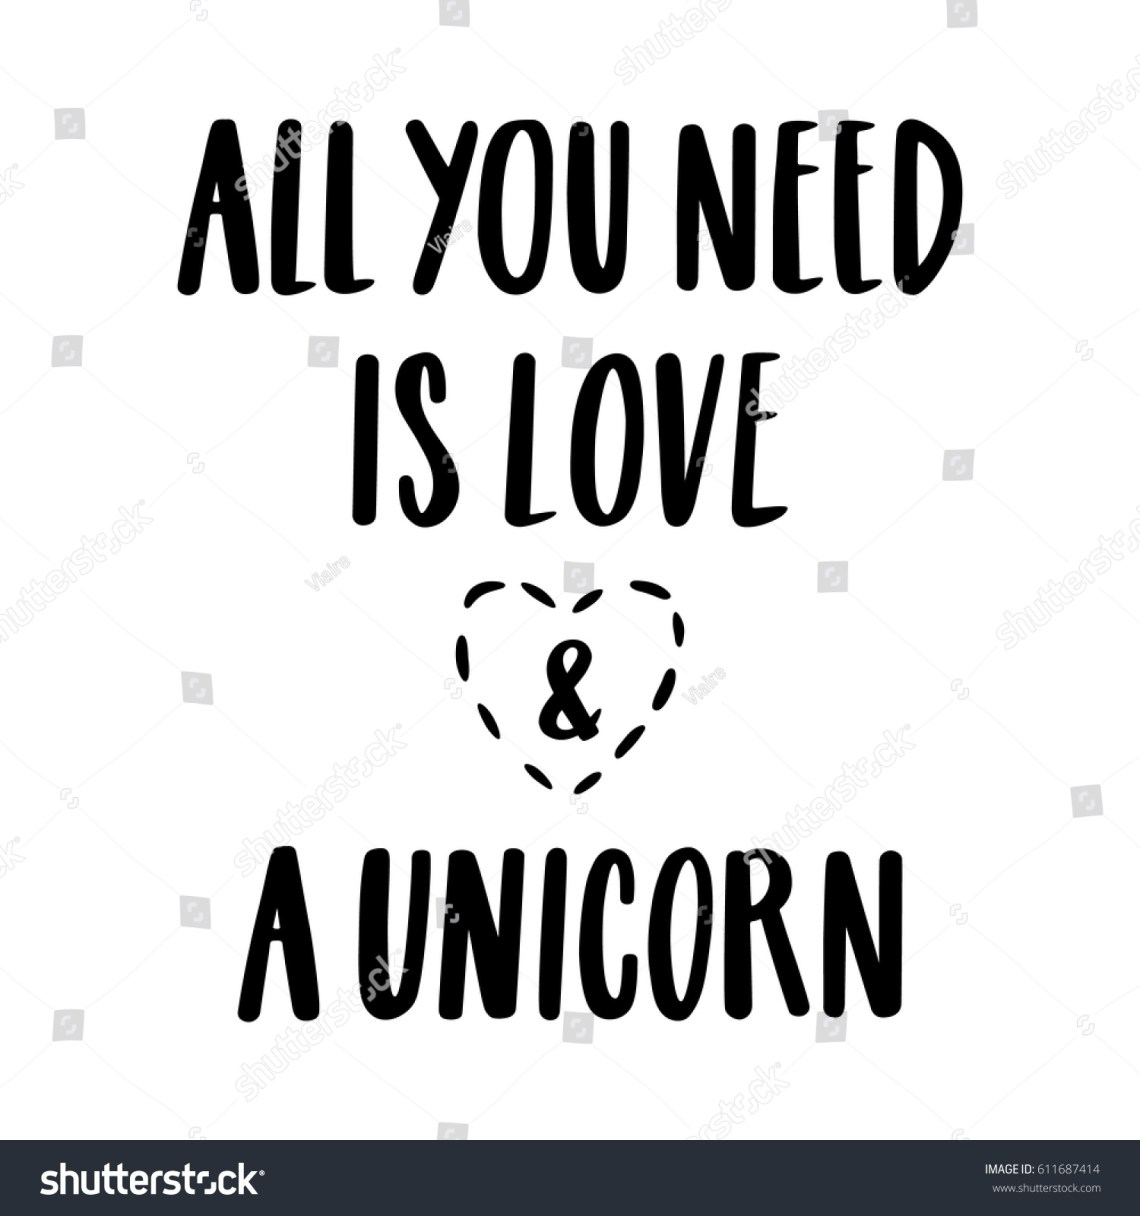 Download All You Need Love Unicorn Quote Stock Vector 611687414 ...